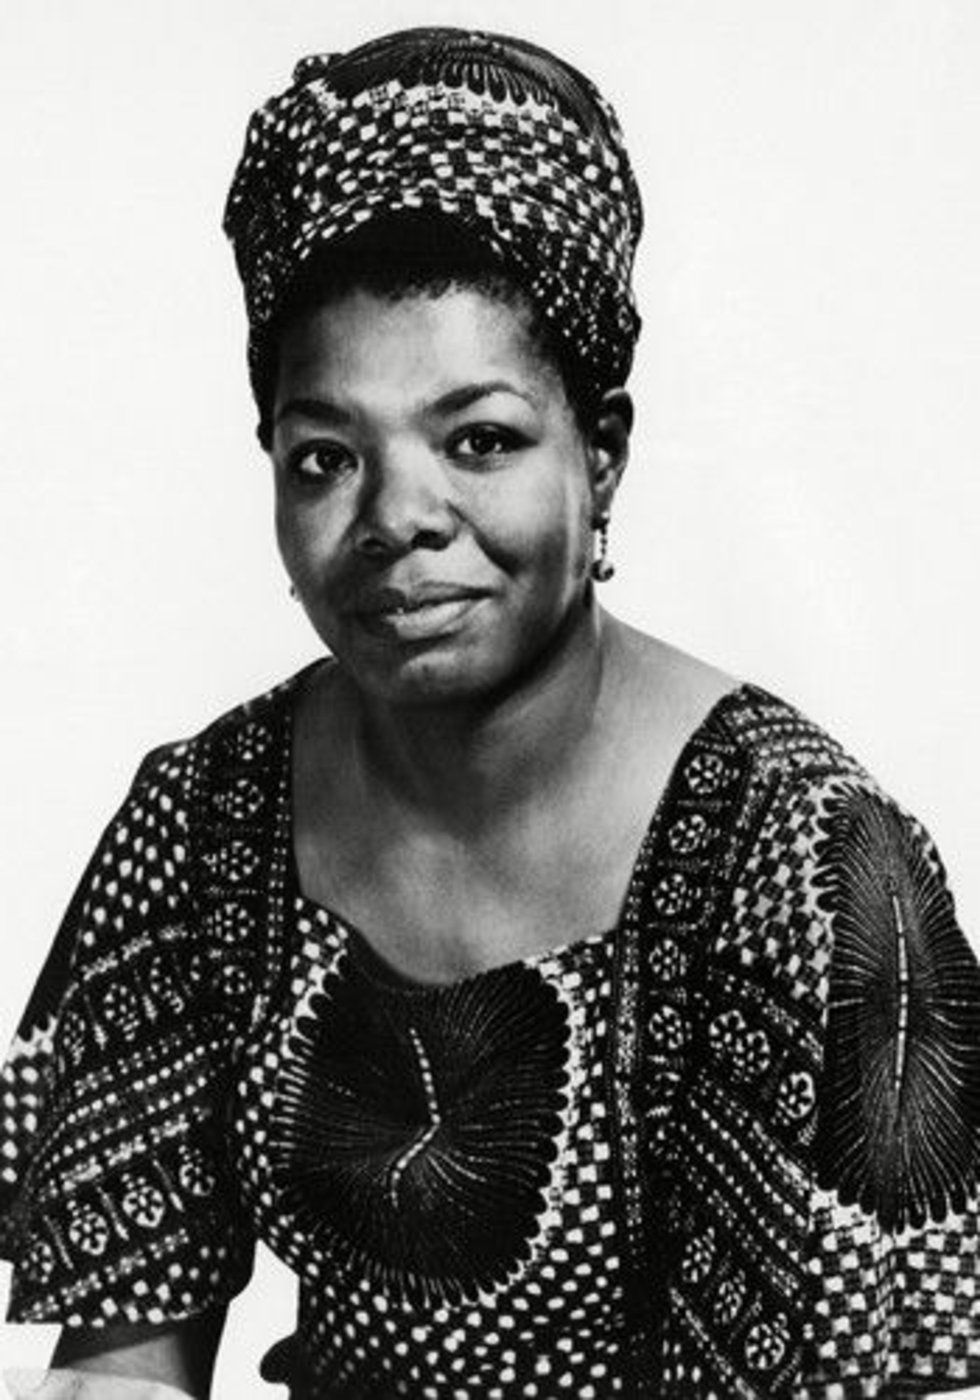 """Maya Angelou """"When I look back, I am so impressed again with the life-giving power of literature. If I were a young person today, trying to gain a sense of myself in the world, I would do that again by reading, just as I did when I was young."""""""